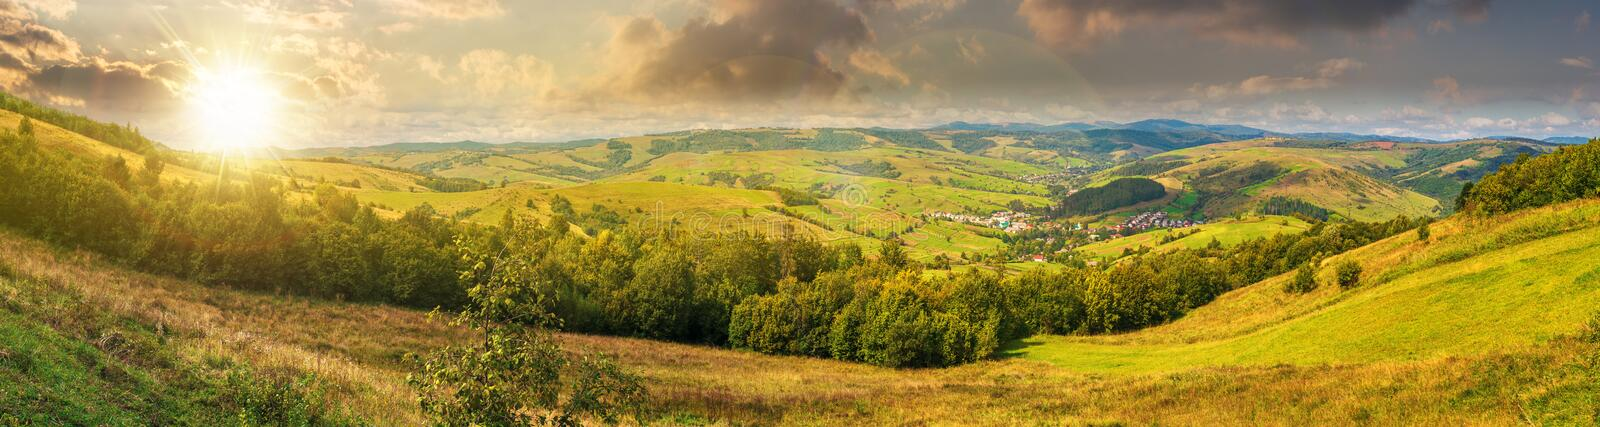 Beautiful countryside panorama at sunset royalty free stock image